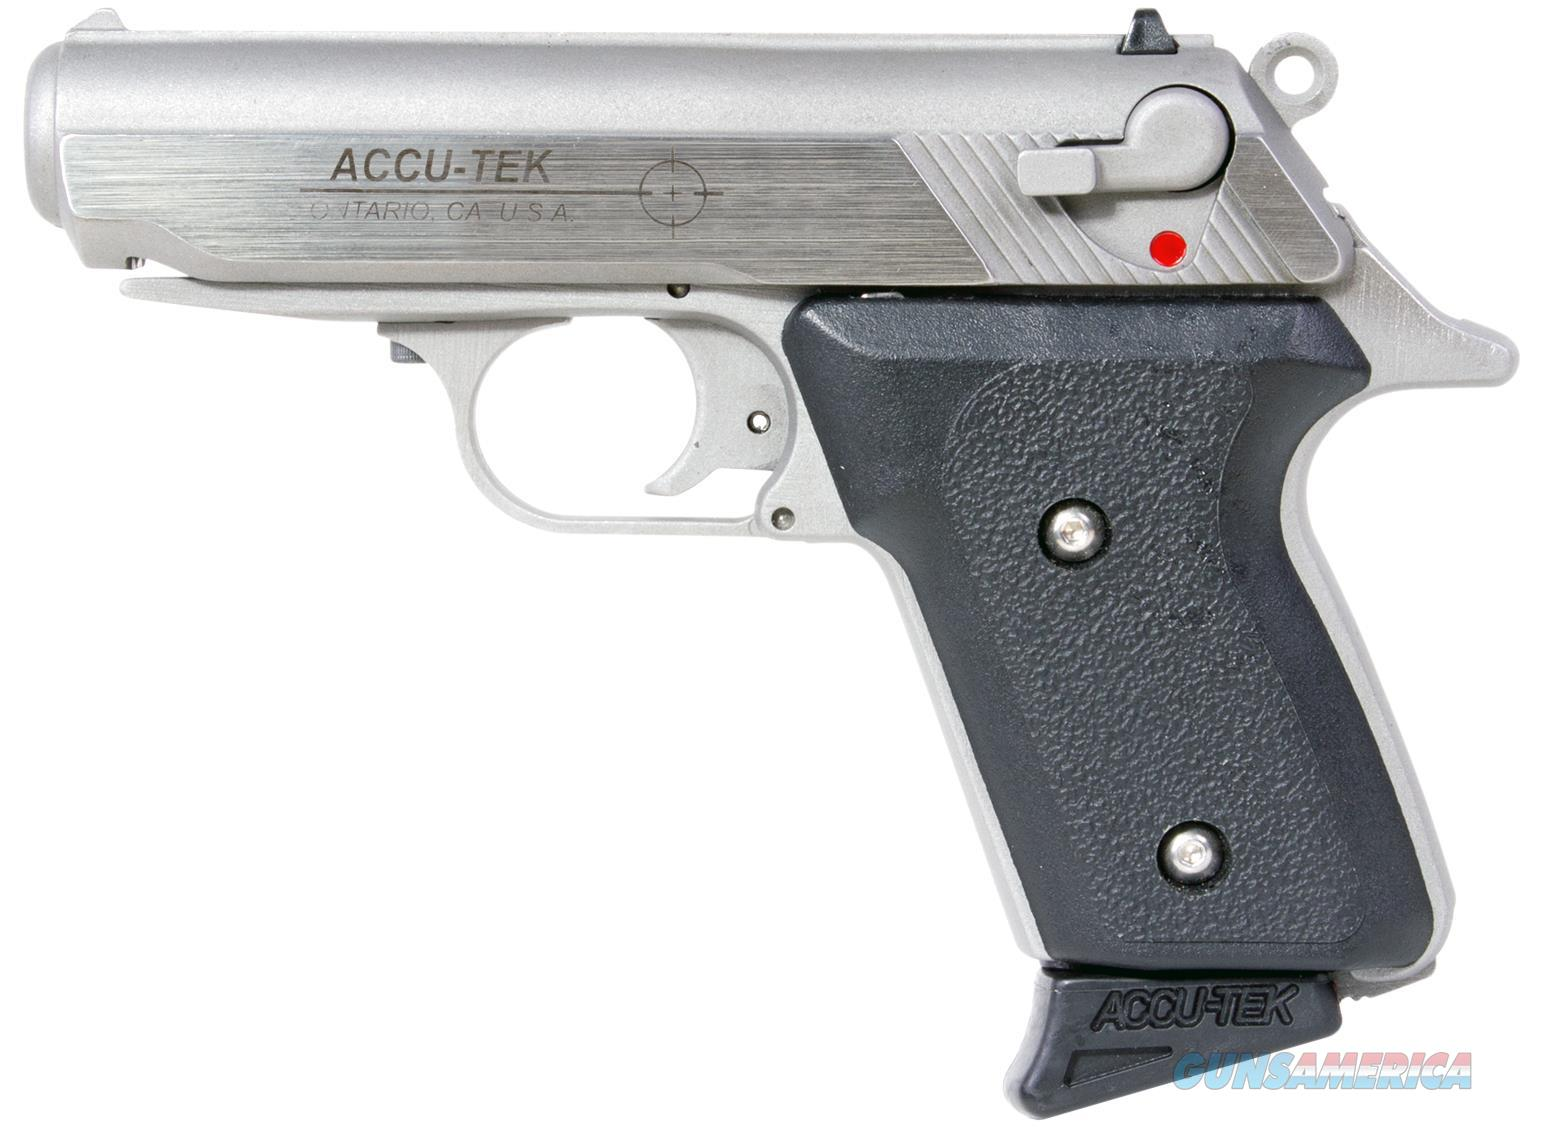 "Excel At38101 Accu-Tek At-380 Ii Single 380 Automatic Colt Pistol (Acp) 2.8"" 6+1 Blk Synthetic Grip Ss AT38101  Guns > Pistols > A Misc Pistols"